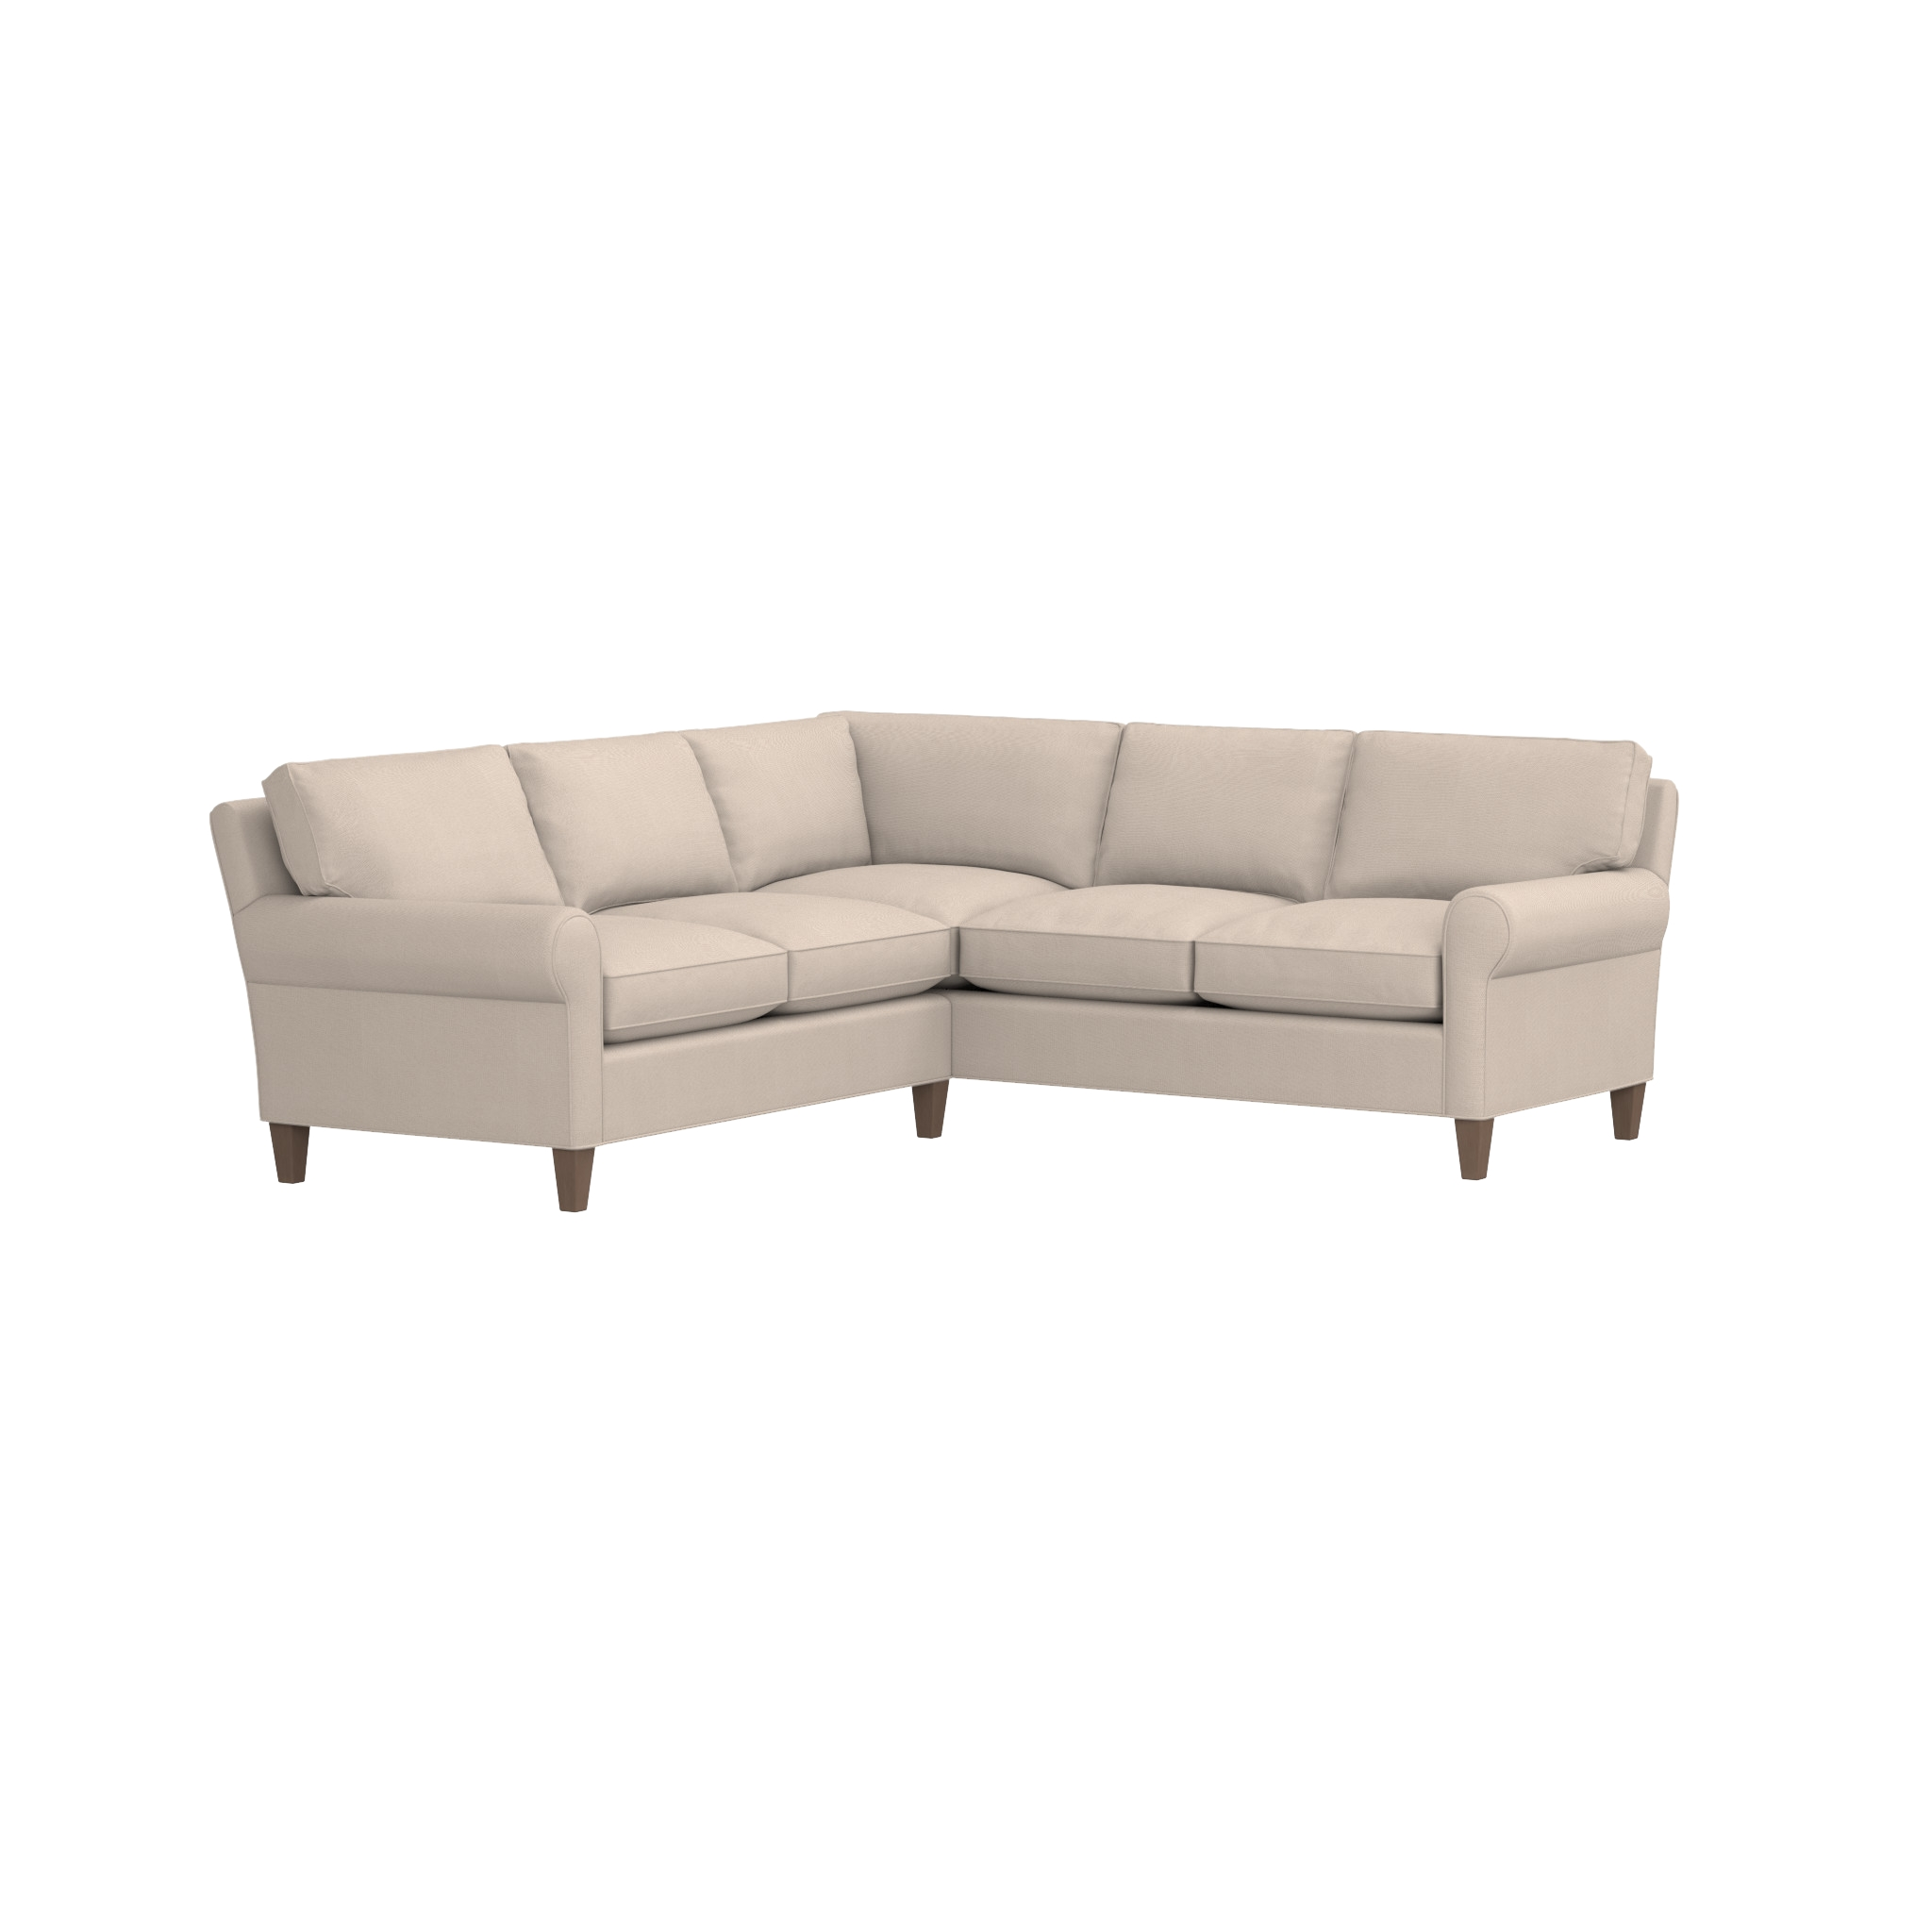 Montclair 2 Piece Sectional Sofa | Crate And Barrel Regarding Crate And Barrel Sectional (Image 14 of 15)